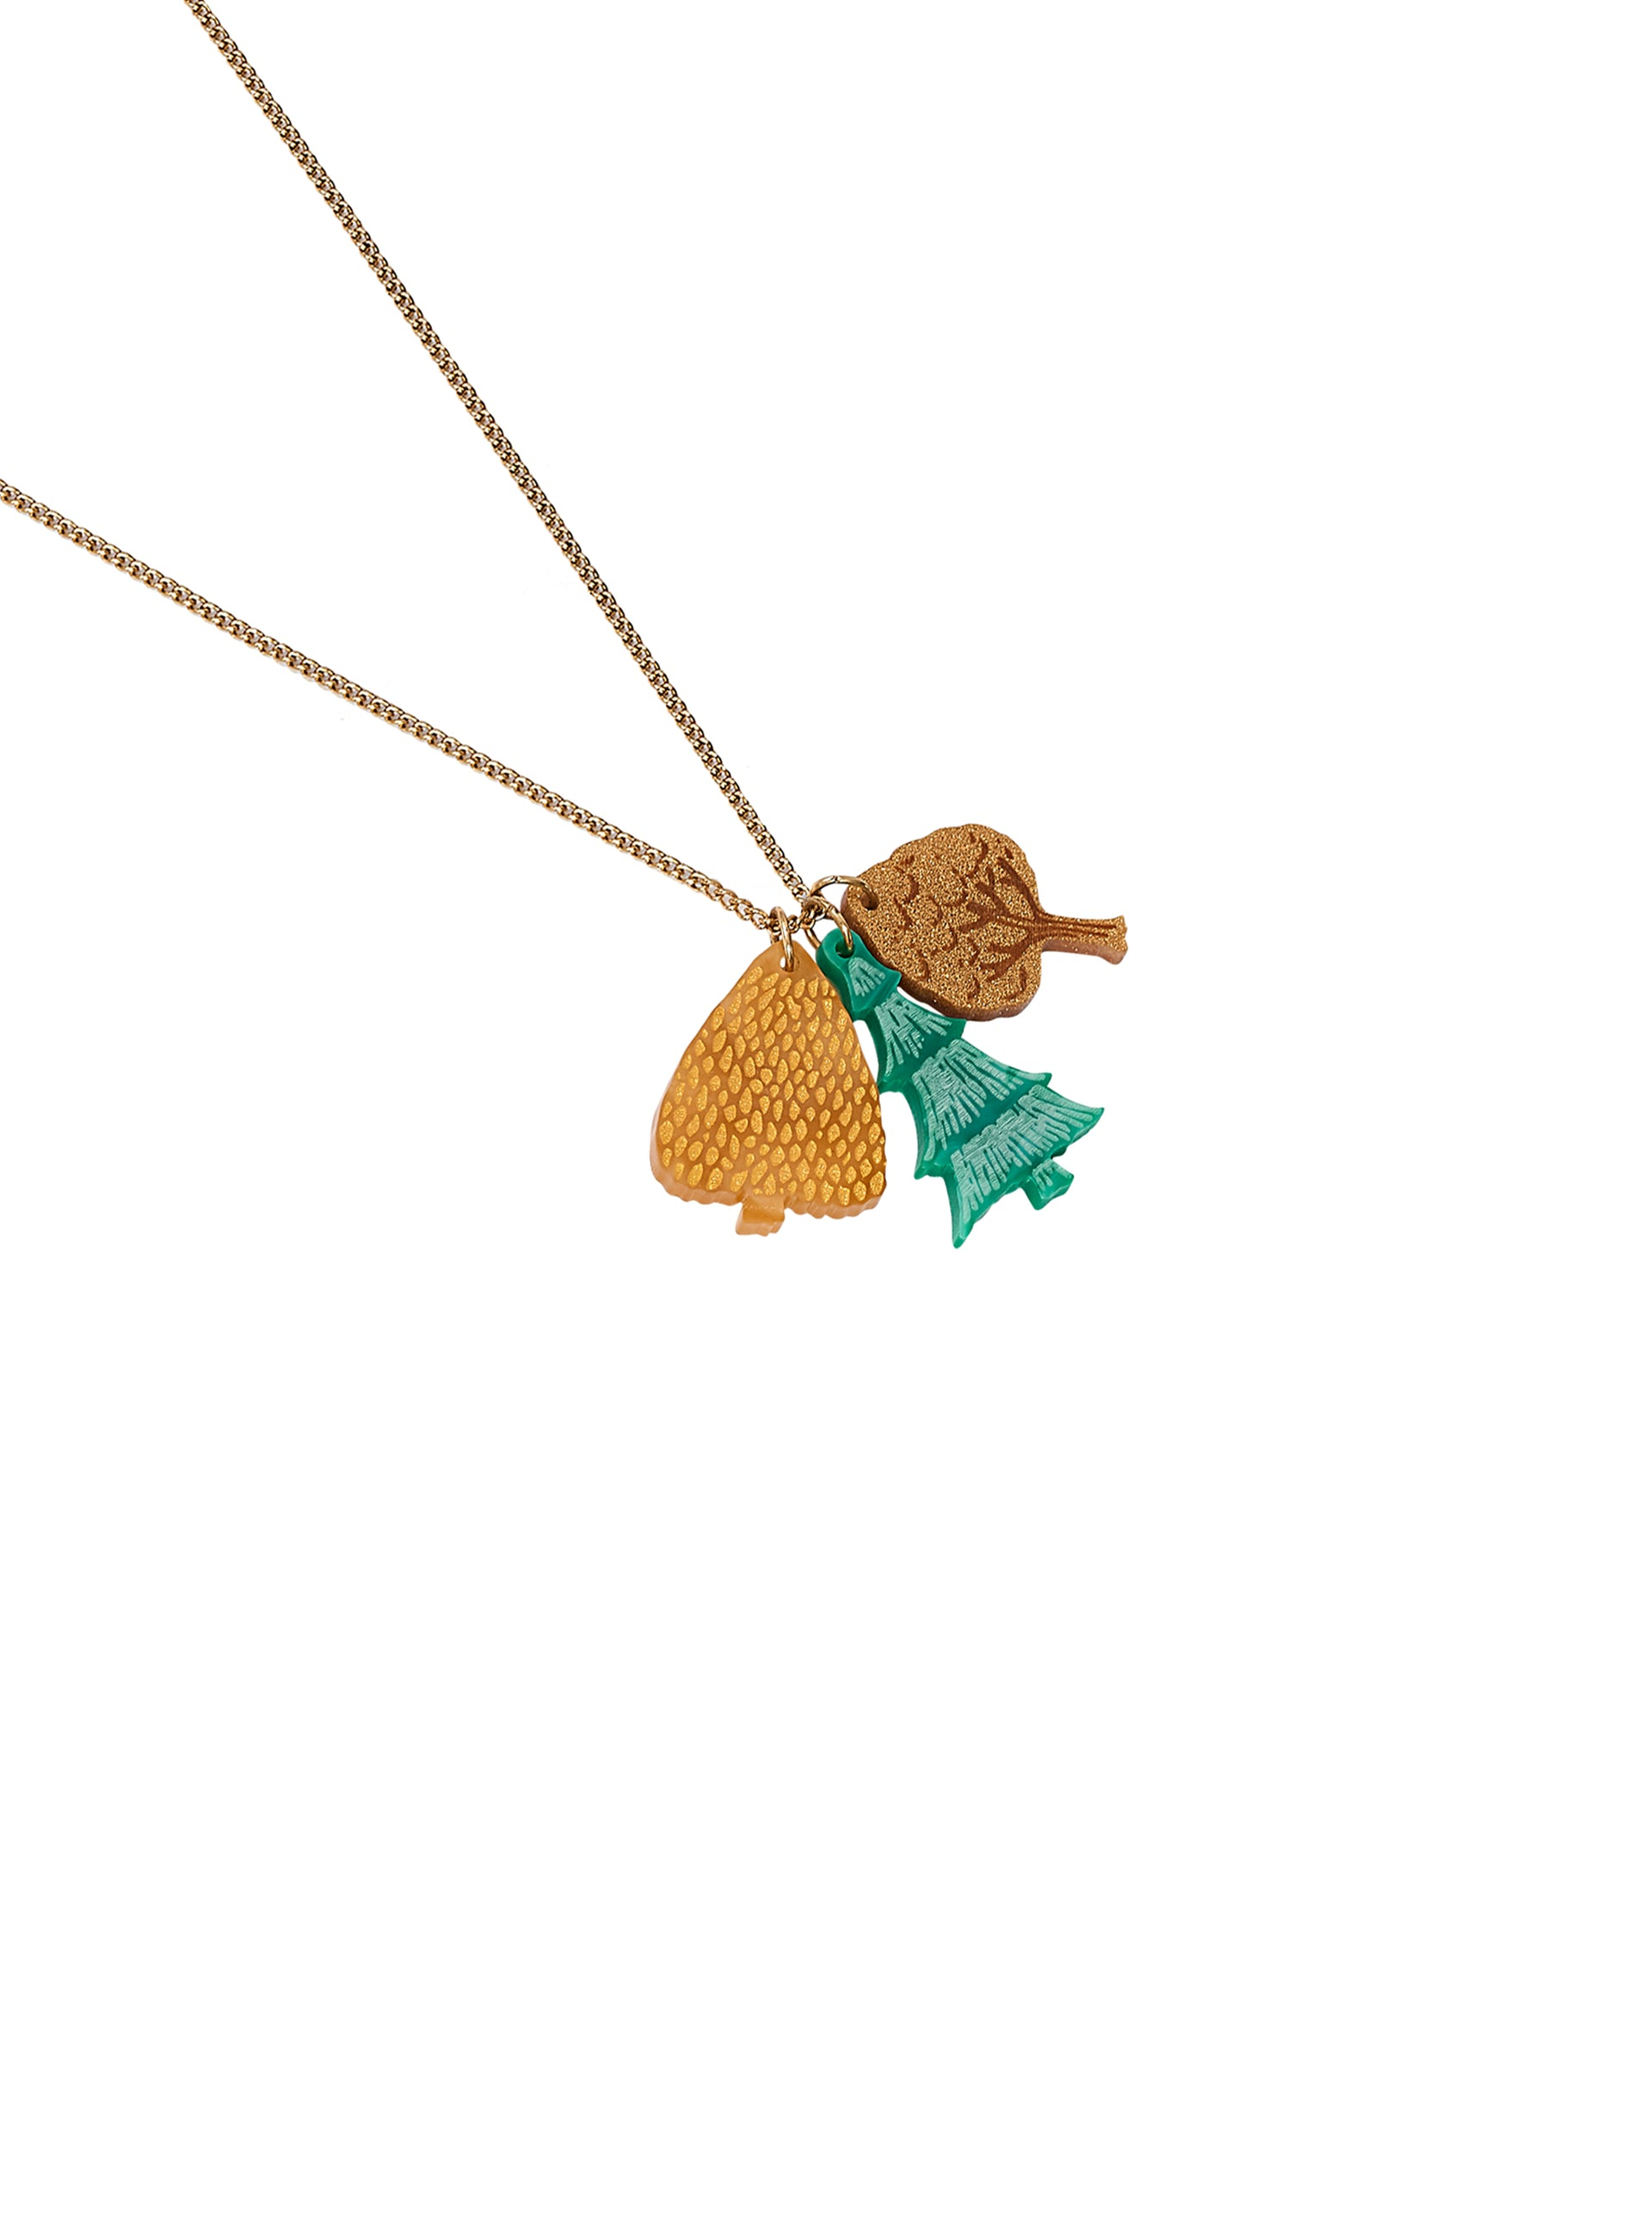 Moominvalley Forest Necklace